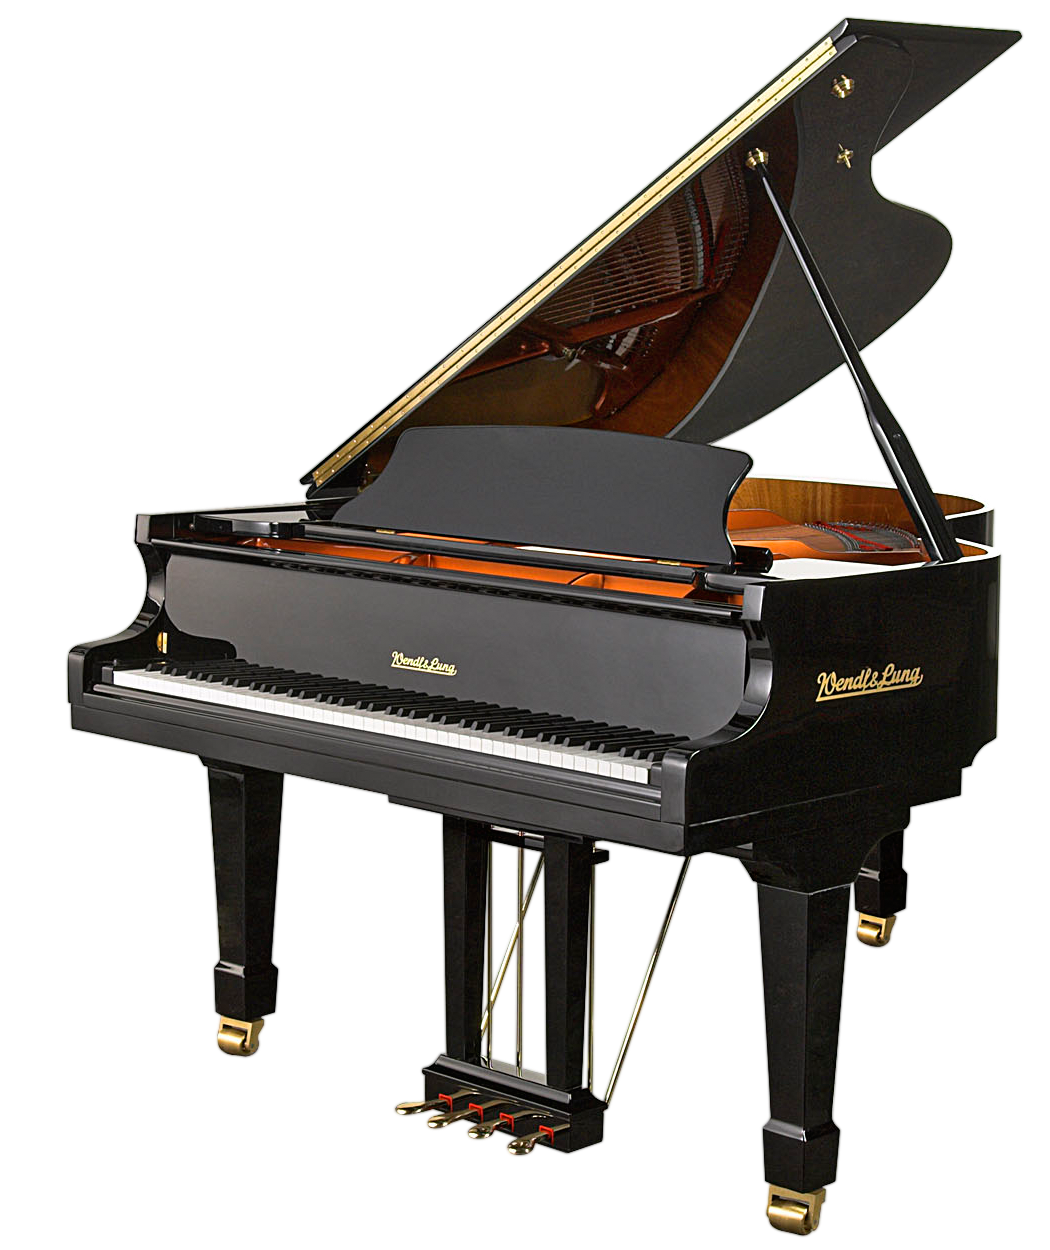 Kohler & Campbell Piano PNG Image